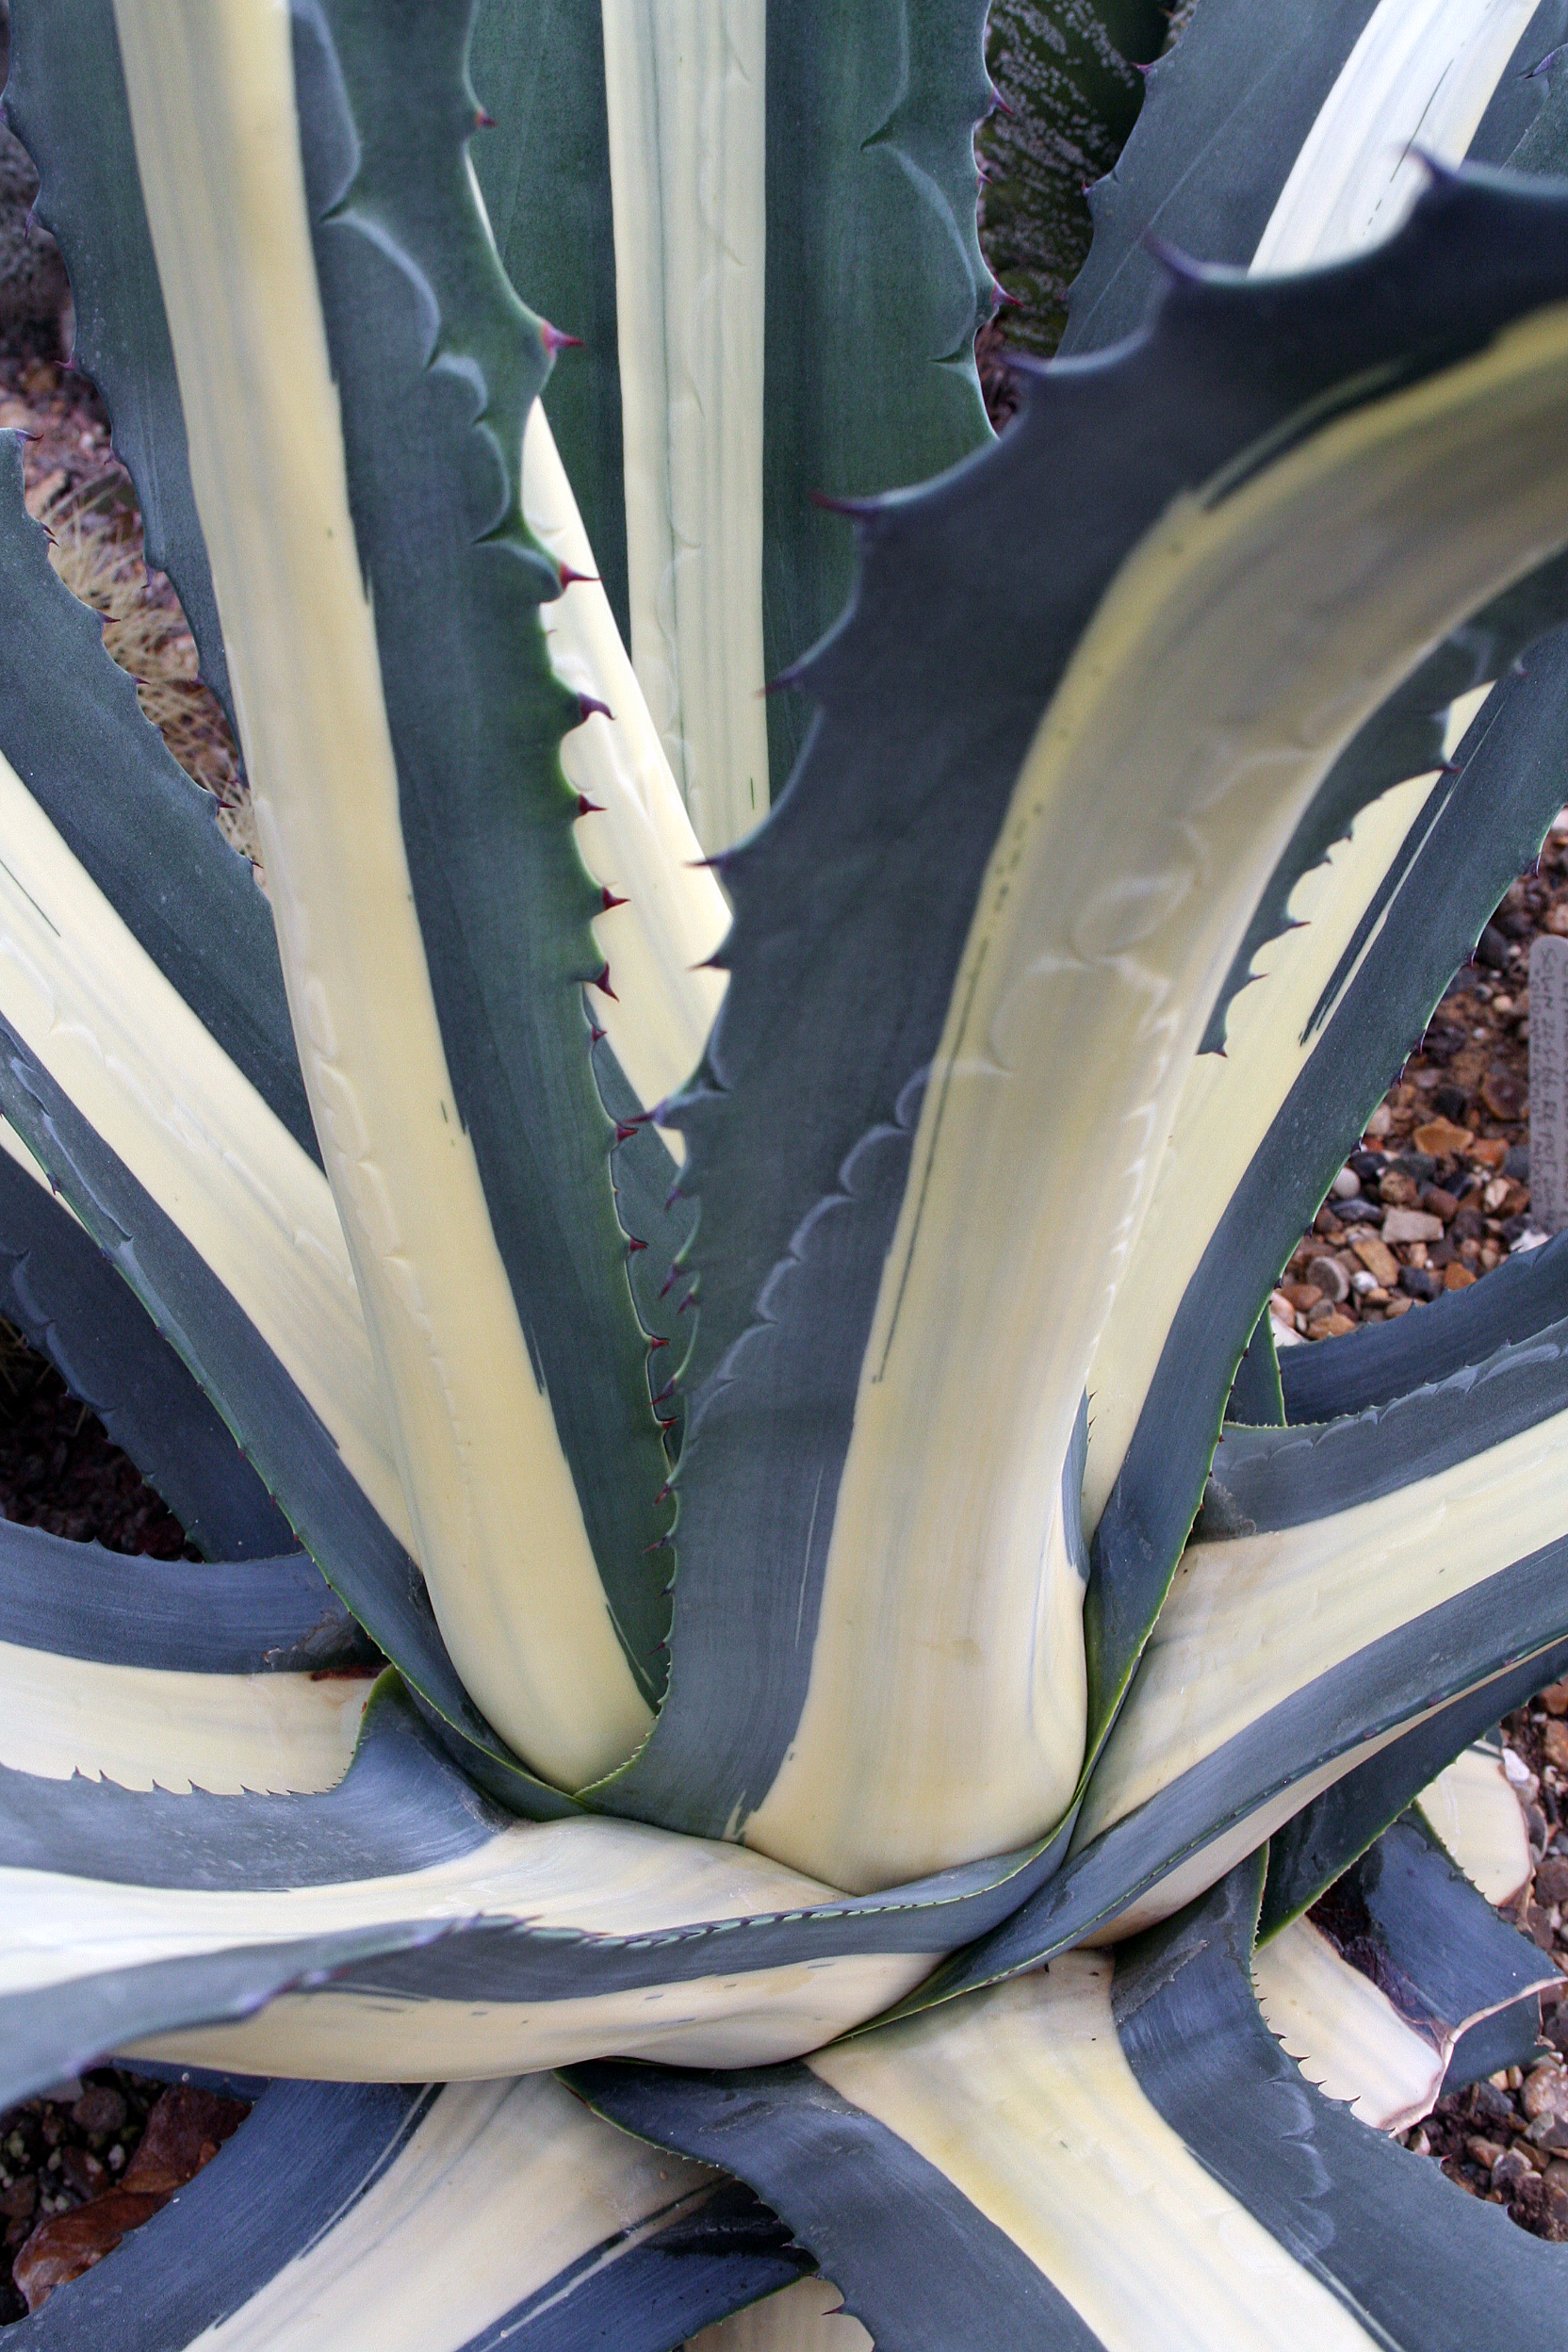 Agave side view 5.JPG